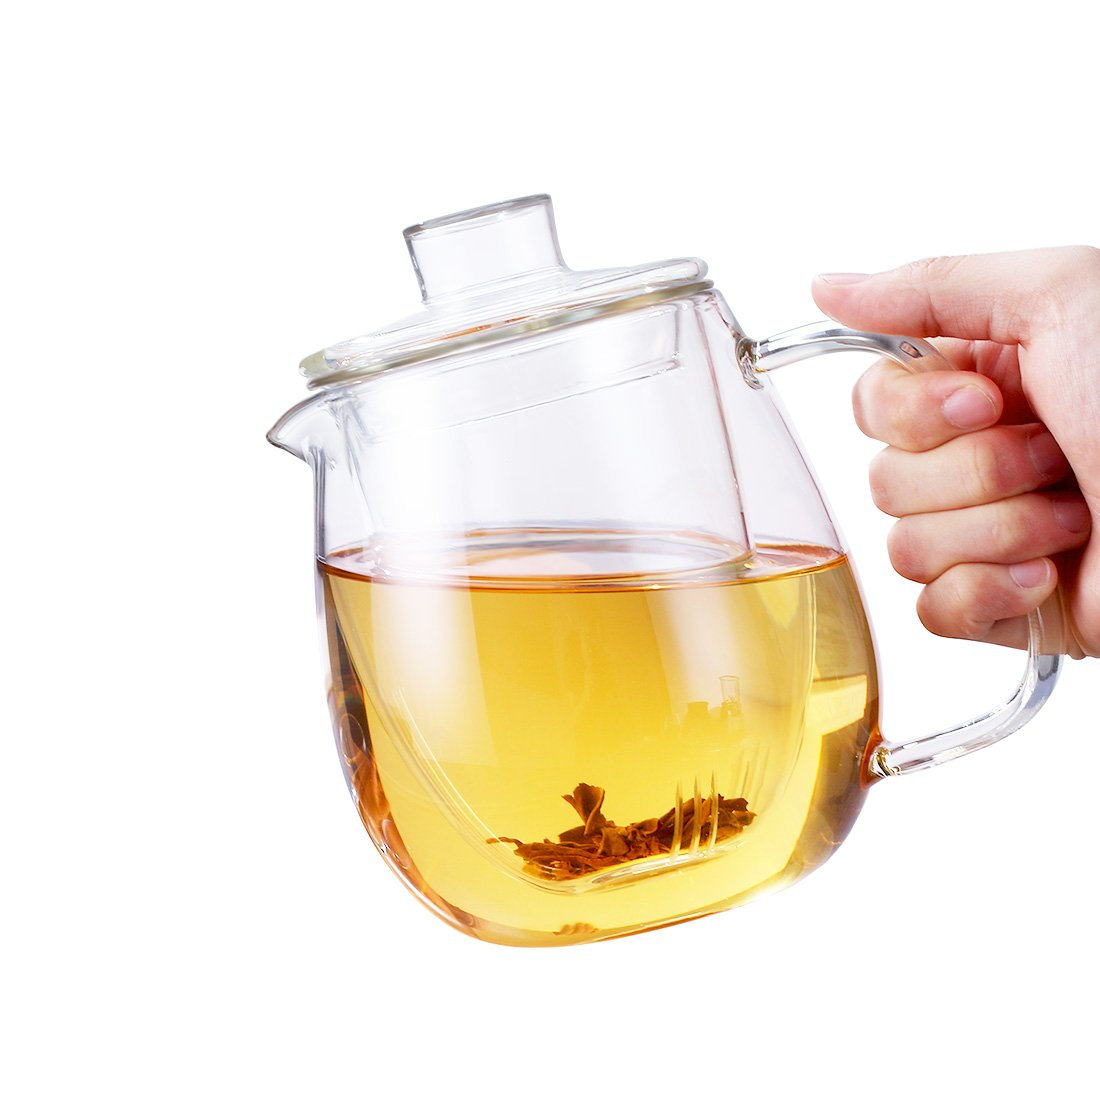 oneisall Glass Pitcher With Lid & Infuser - Borosilicate Glass Carafe 40oz/1200ml BPA-FREE Heat-resistant,Perfect For Hot&Cold Water,Tea,Juice,milk DHTGYBL581 (1200ML) by oneisall (Image #6)